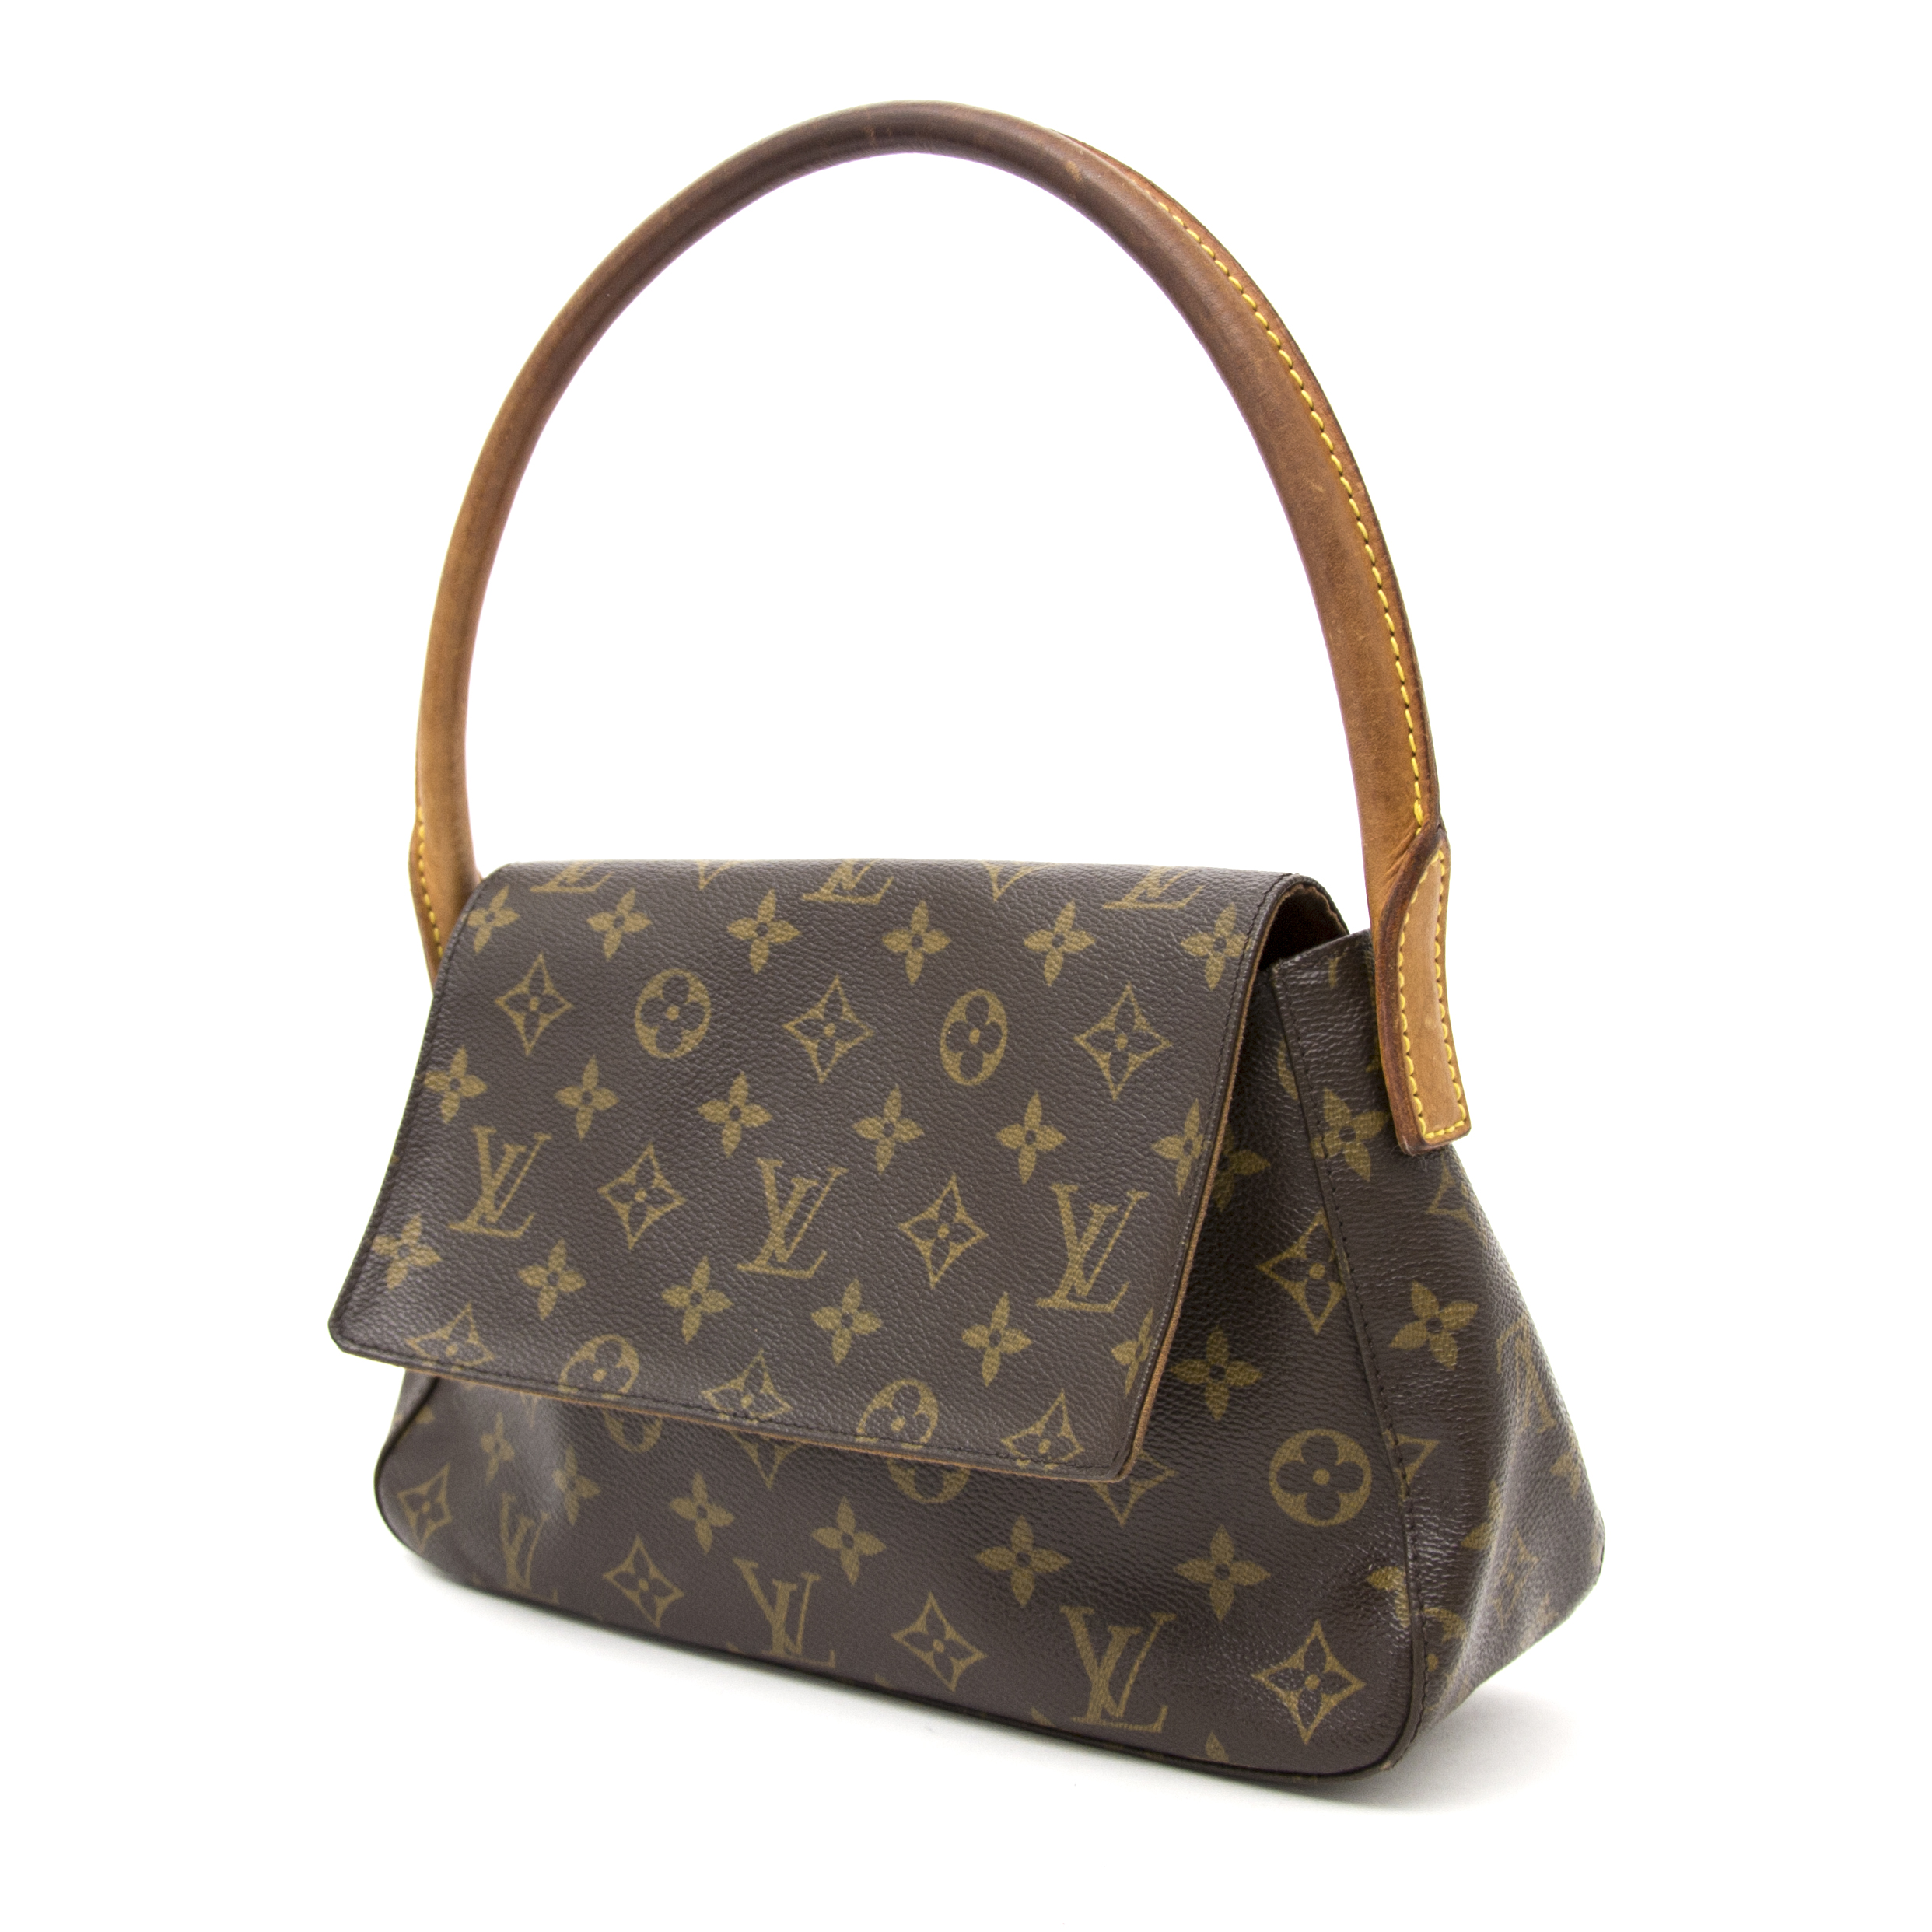 Vintage Louis Vuitton Monogram Looping Bag for the best price at Labellov webshop. Safe and secure online shopping with 100% authenticity. Vintage Louis Vuitton Monogram Looping Bag pour le meilleur prix.